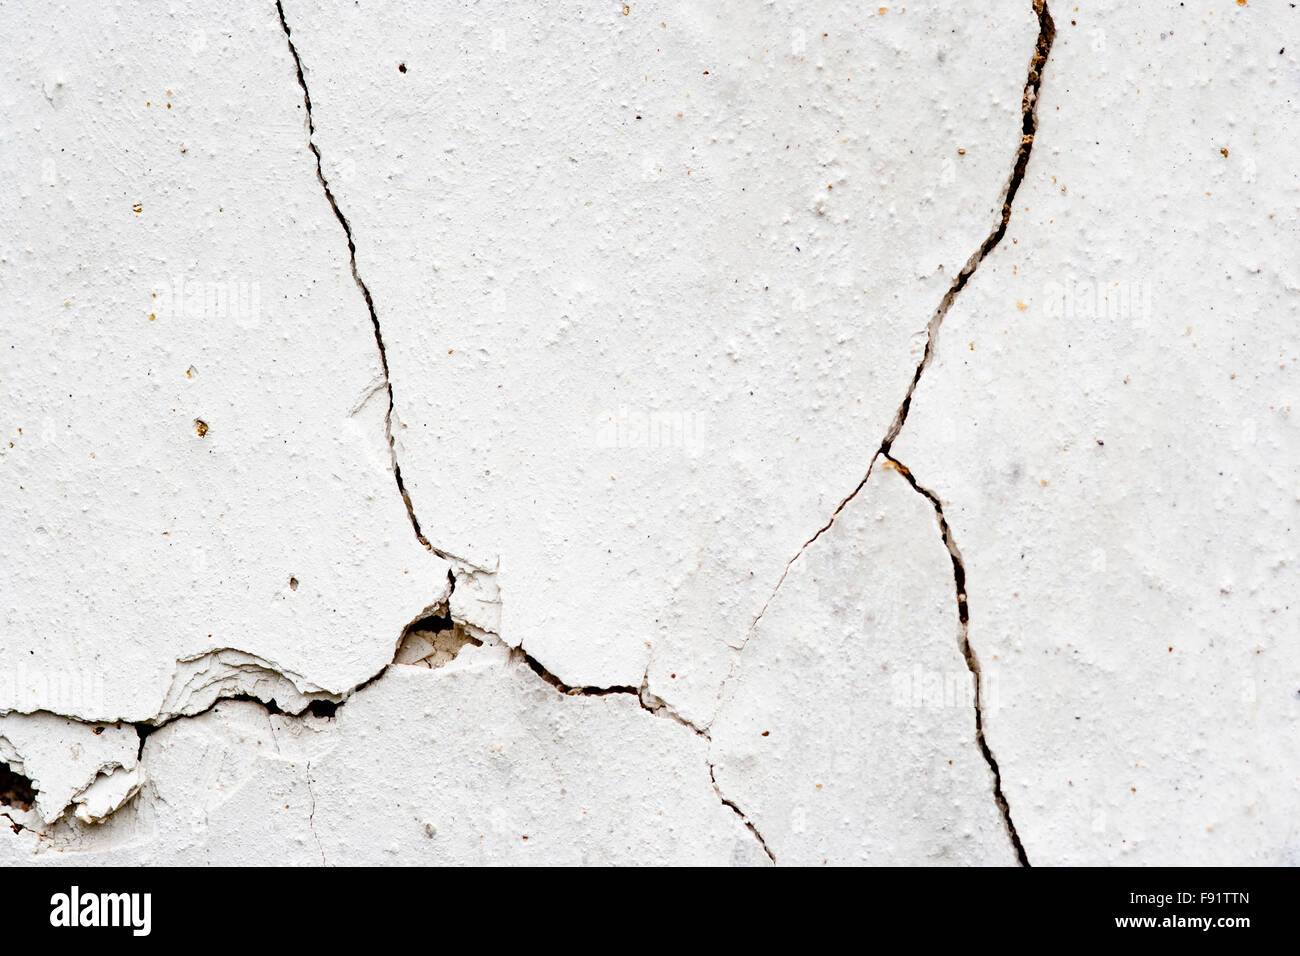 0ld and cracked plaster - grunge texture - Stock Image